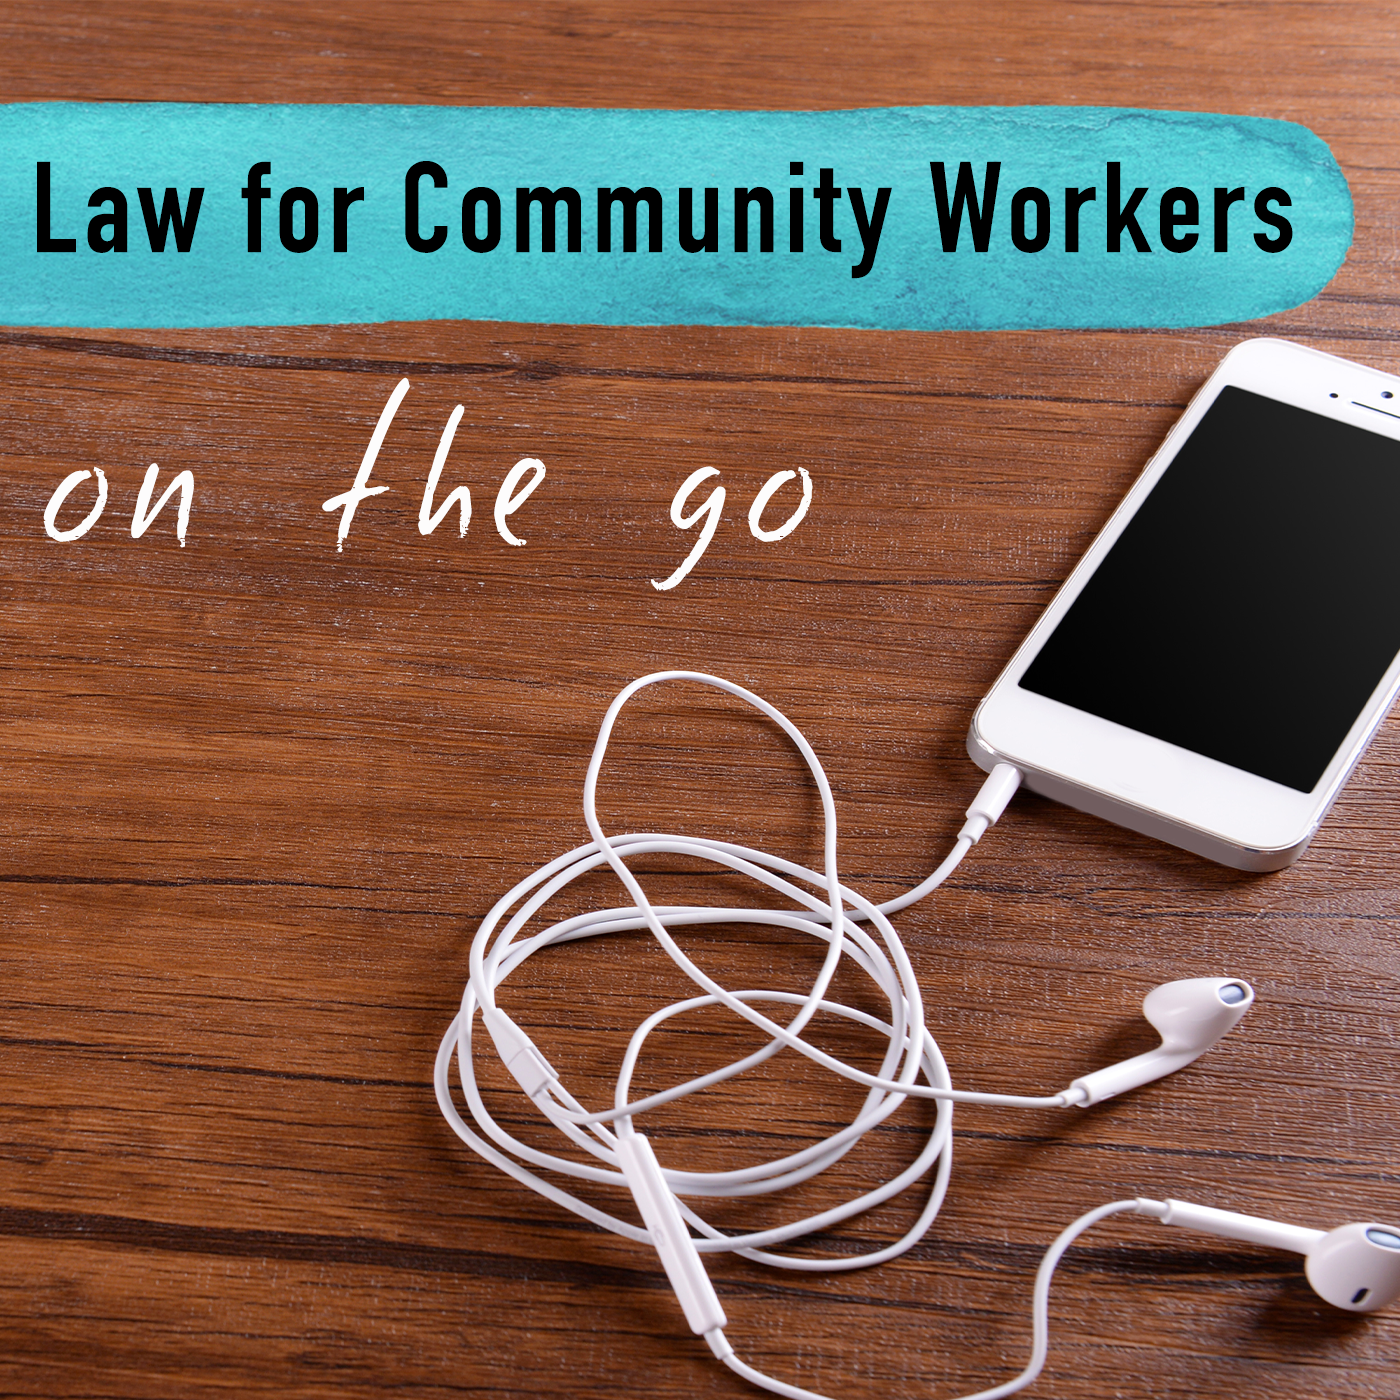 Law for Community Workers